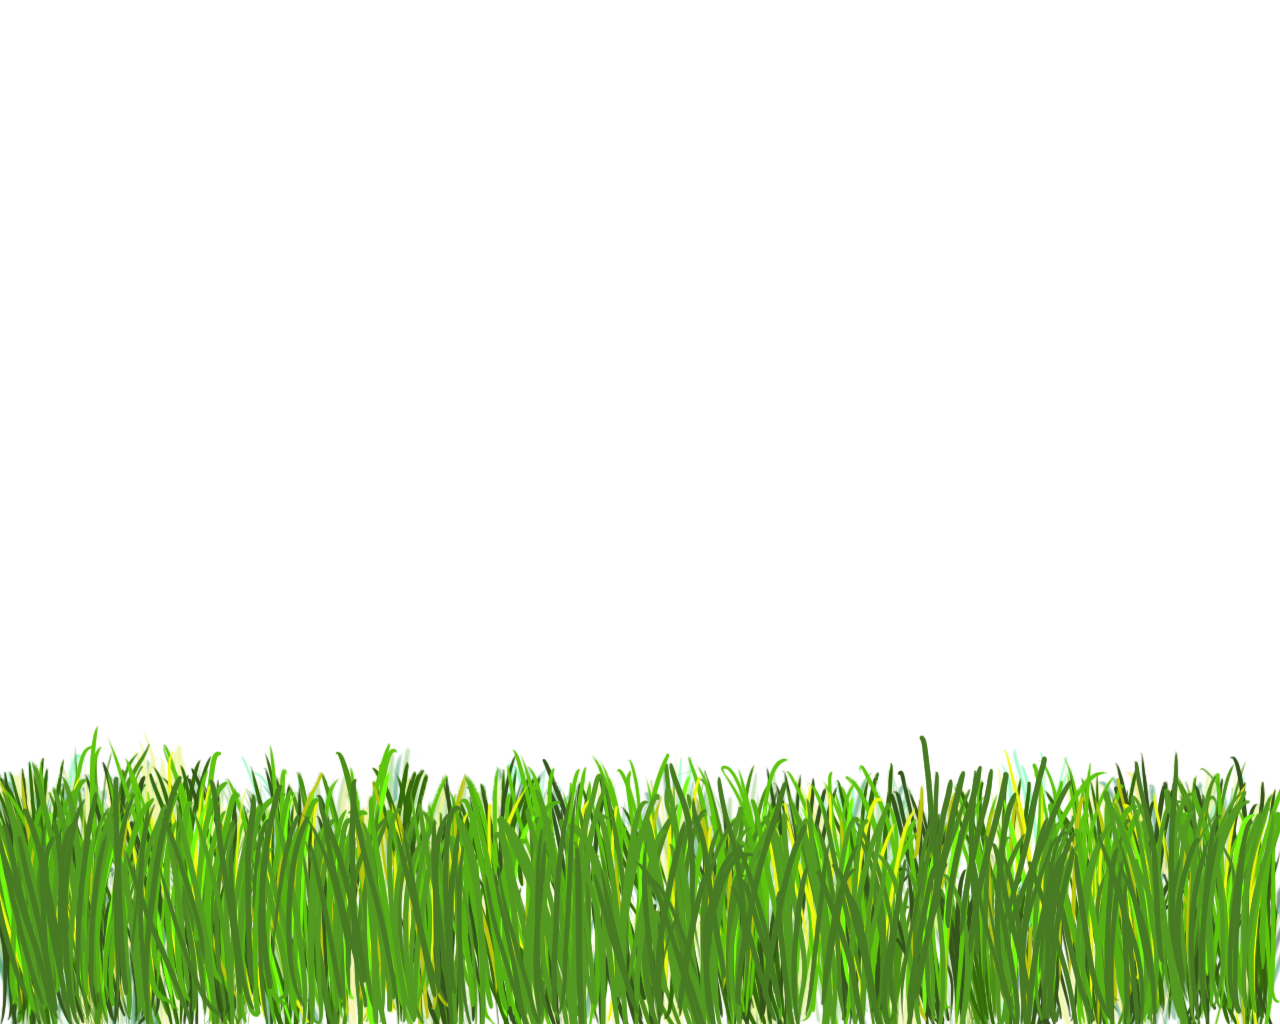 Cartoon grass png. Transparent pictures free icons